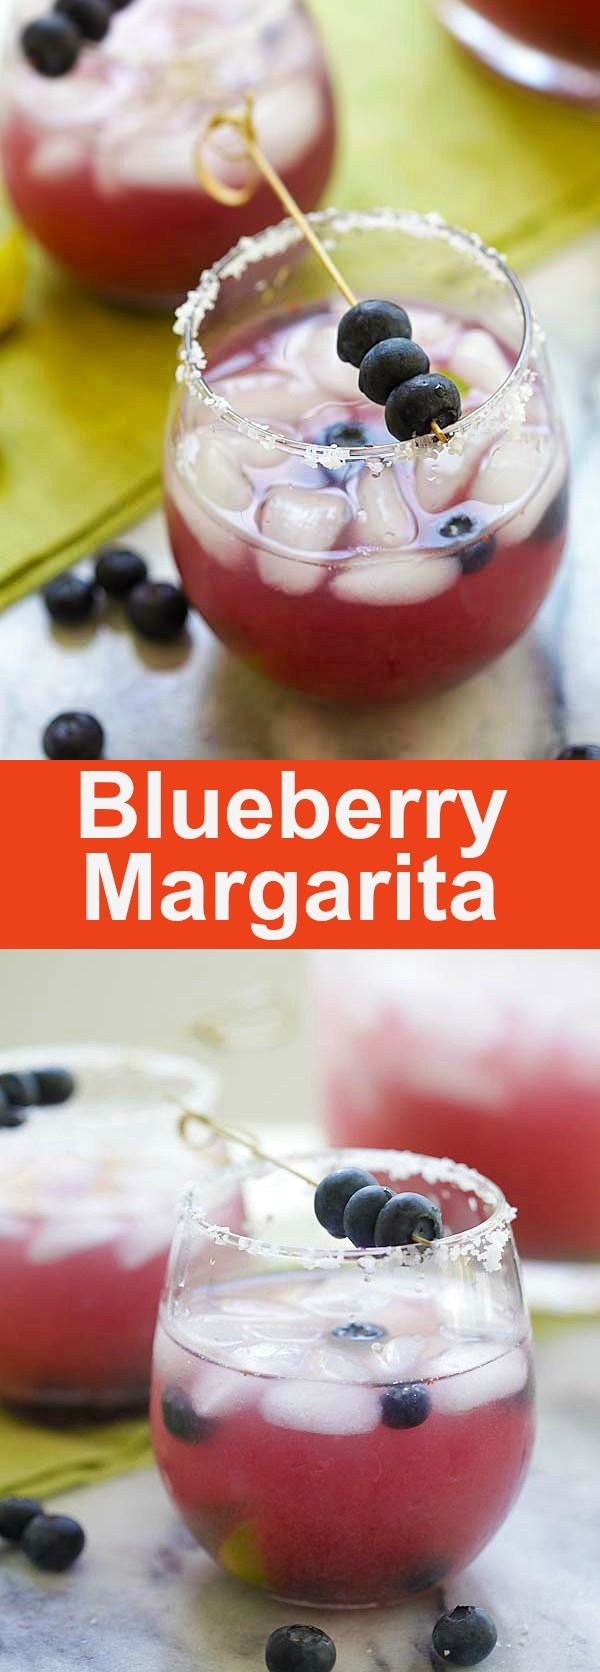 Blueberry Margarita – the booziest blueberry margarita recipe with silver tequila and blueberries. Party is on with this quick and easy recipe   rasamalaysia.com